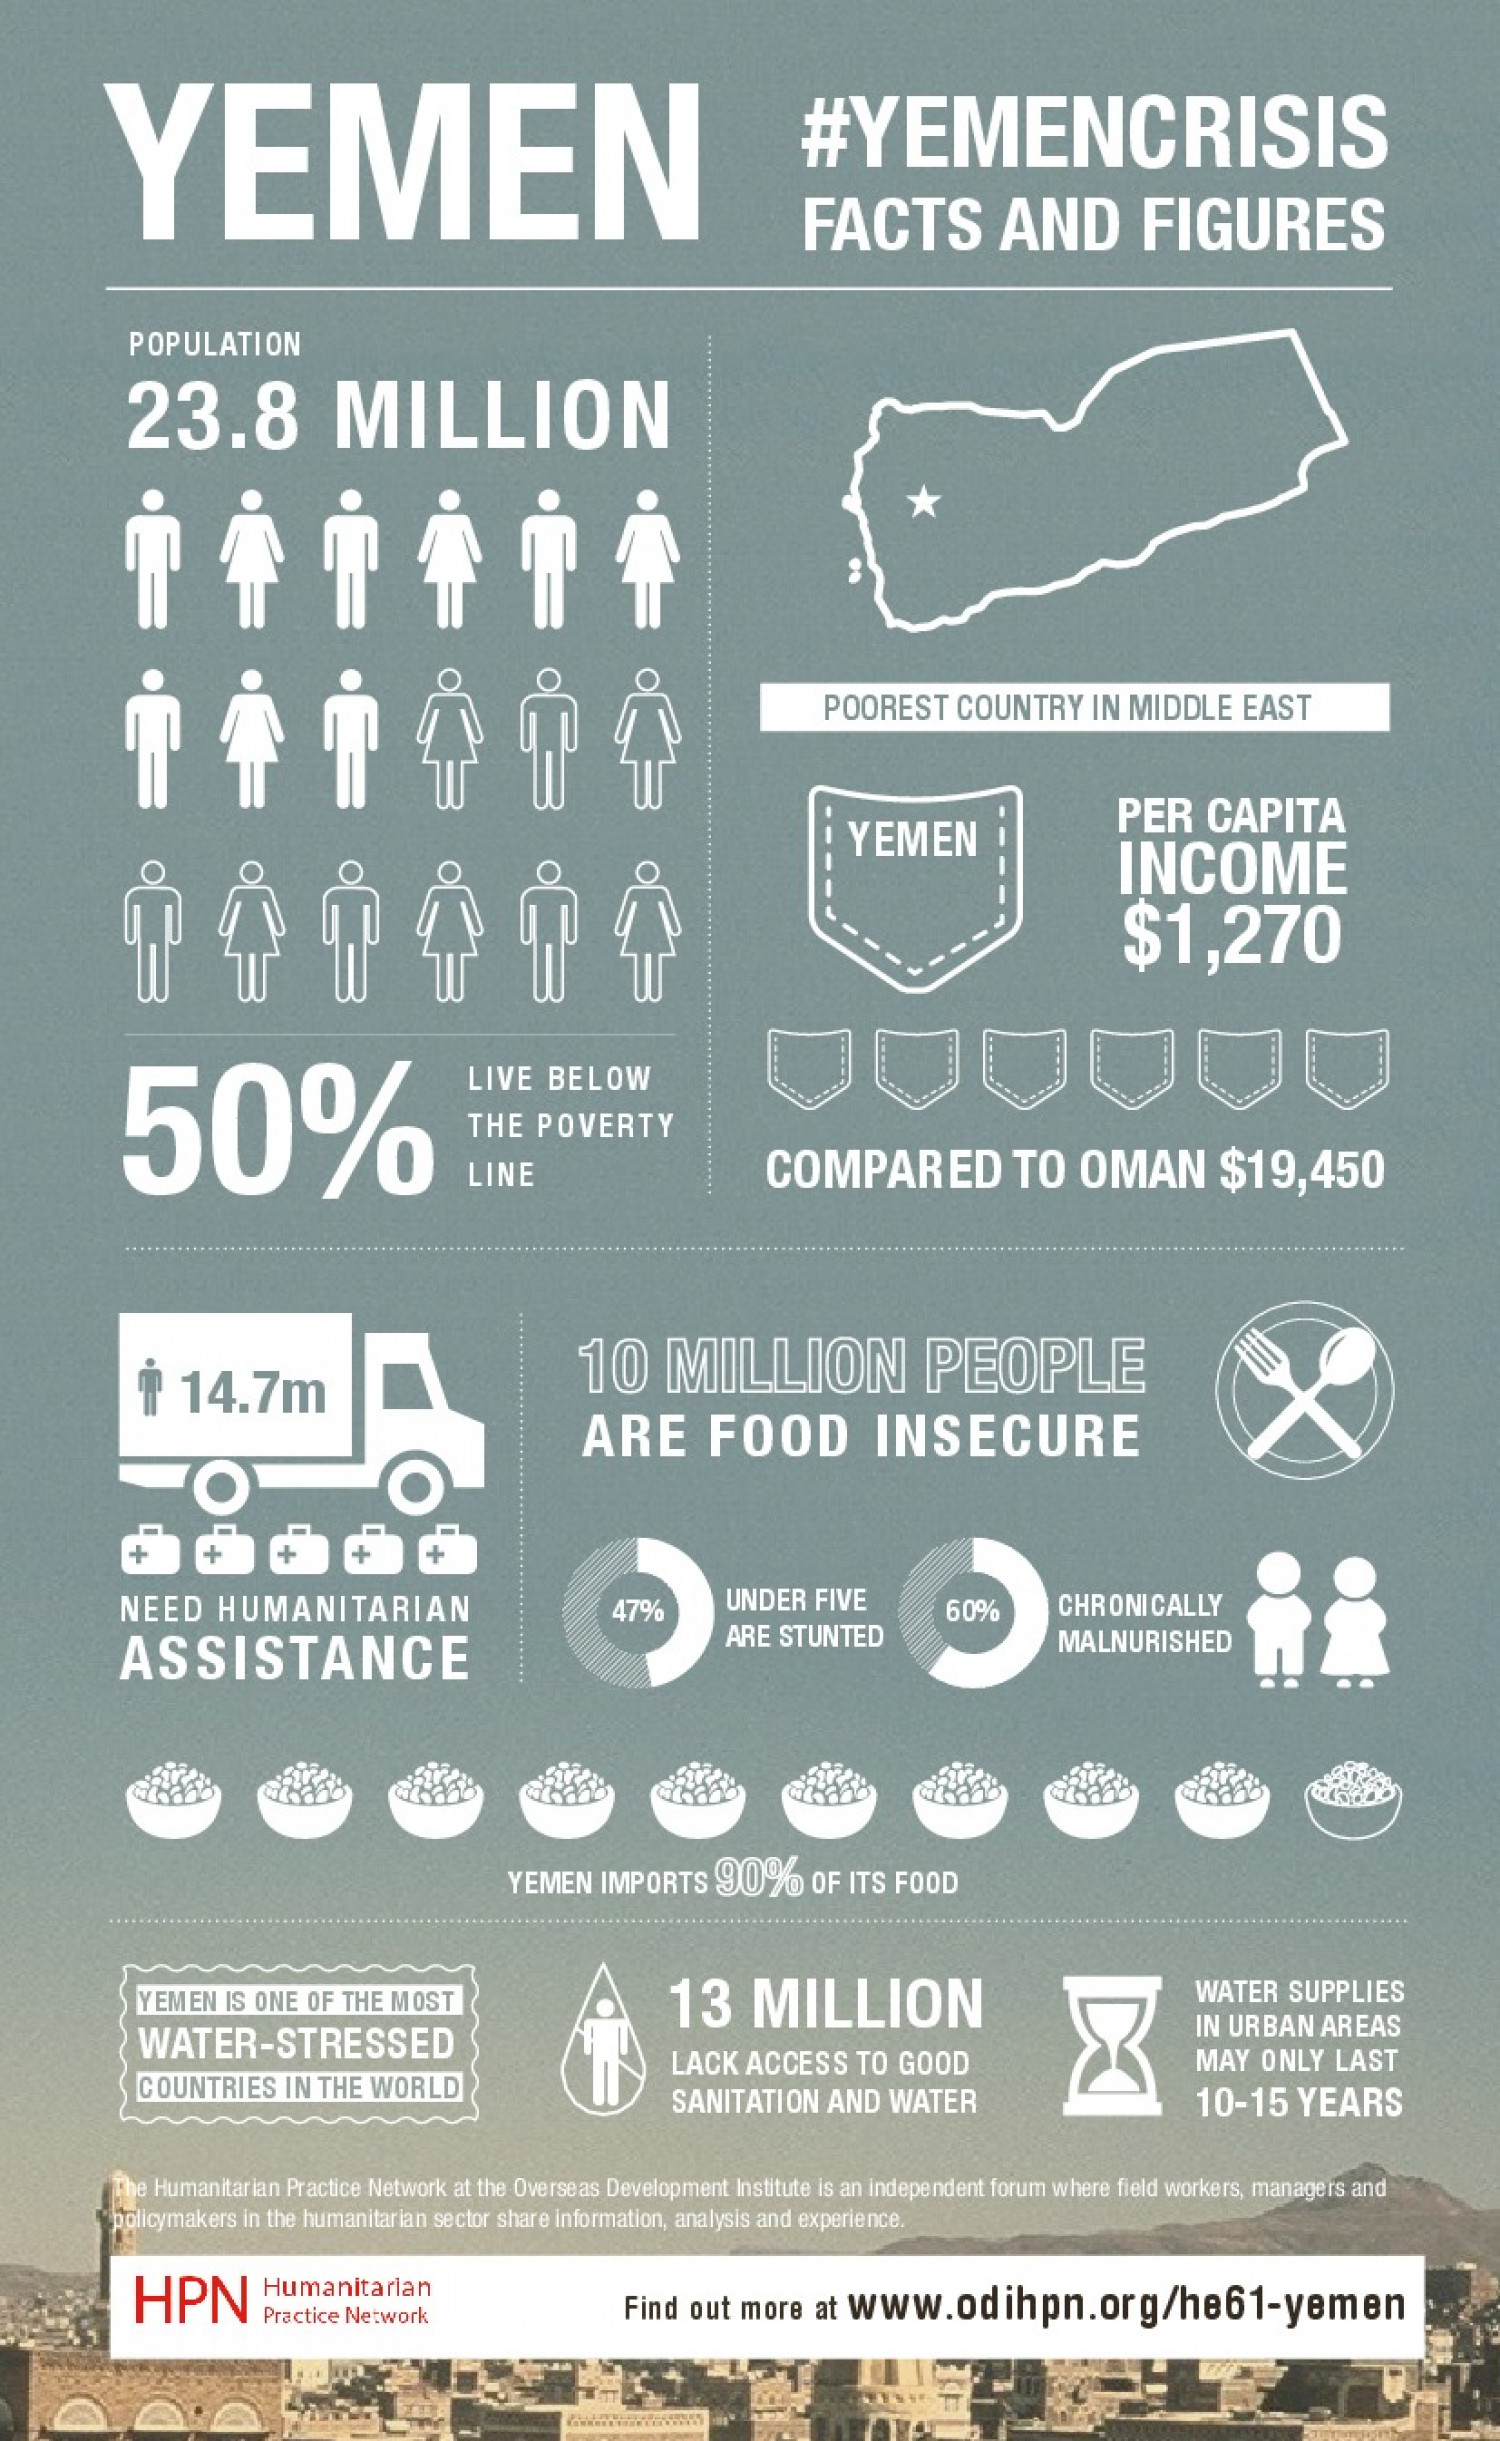 Yemen Crisis: Facts and Figures Infographic